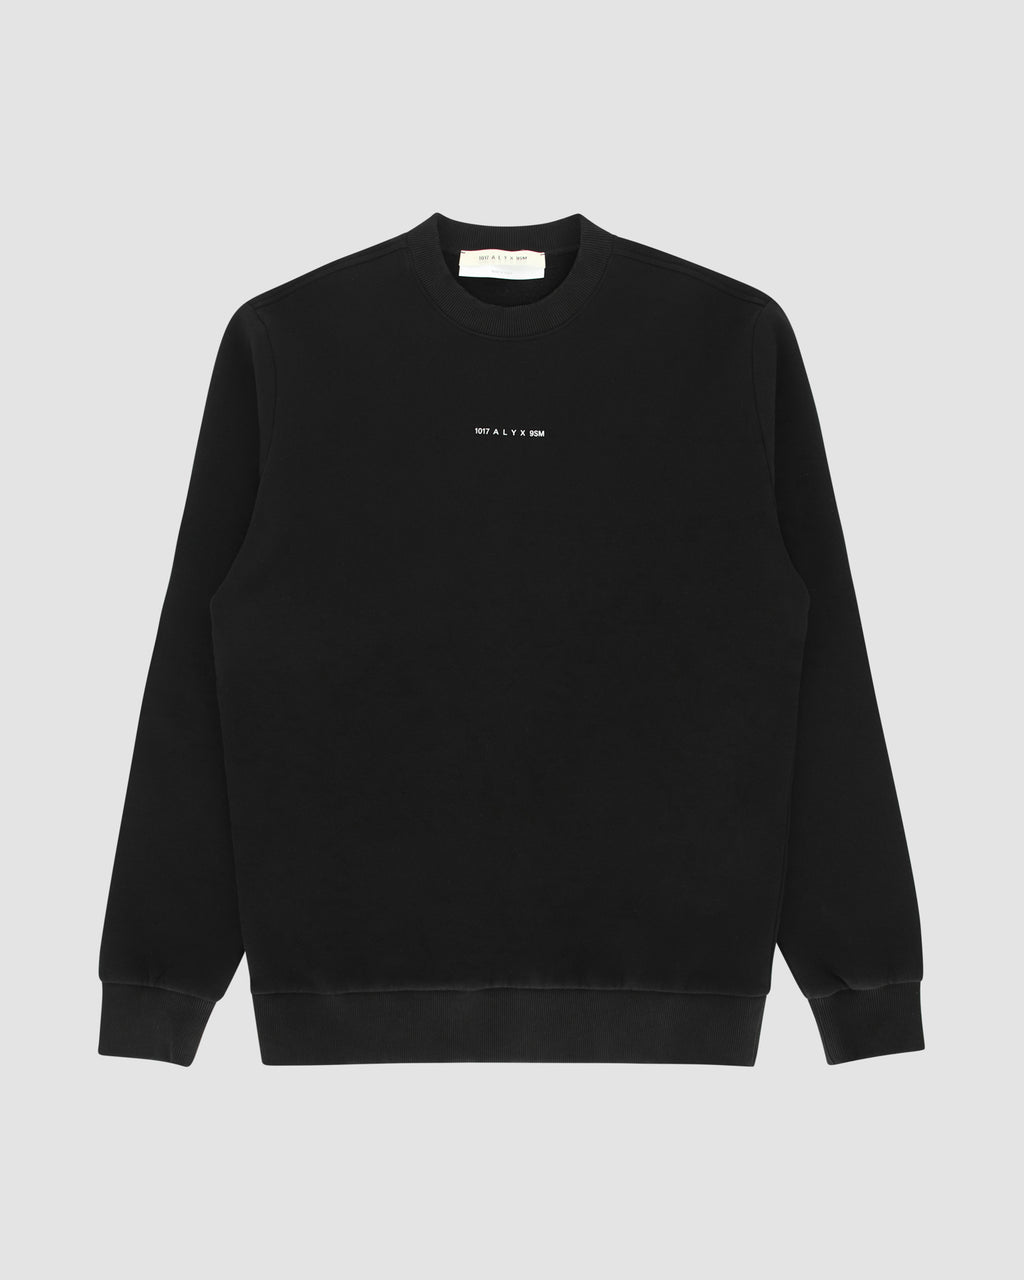 ADDRESS LOGO CREWNECK